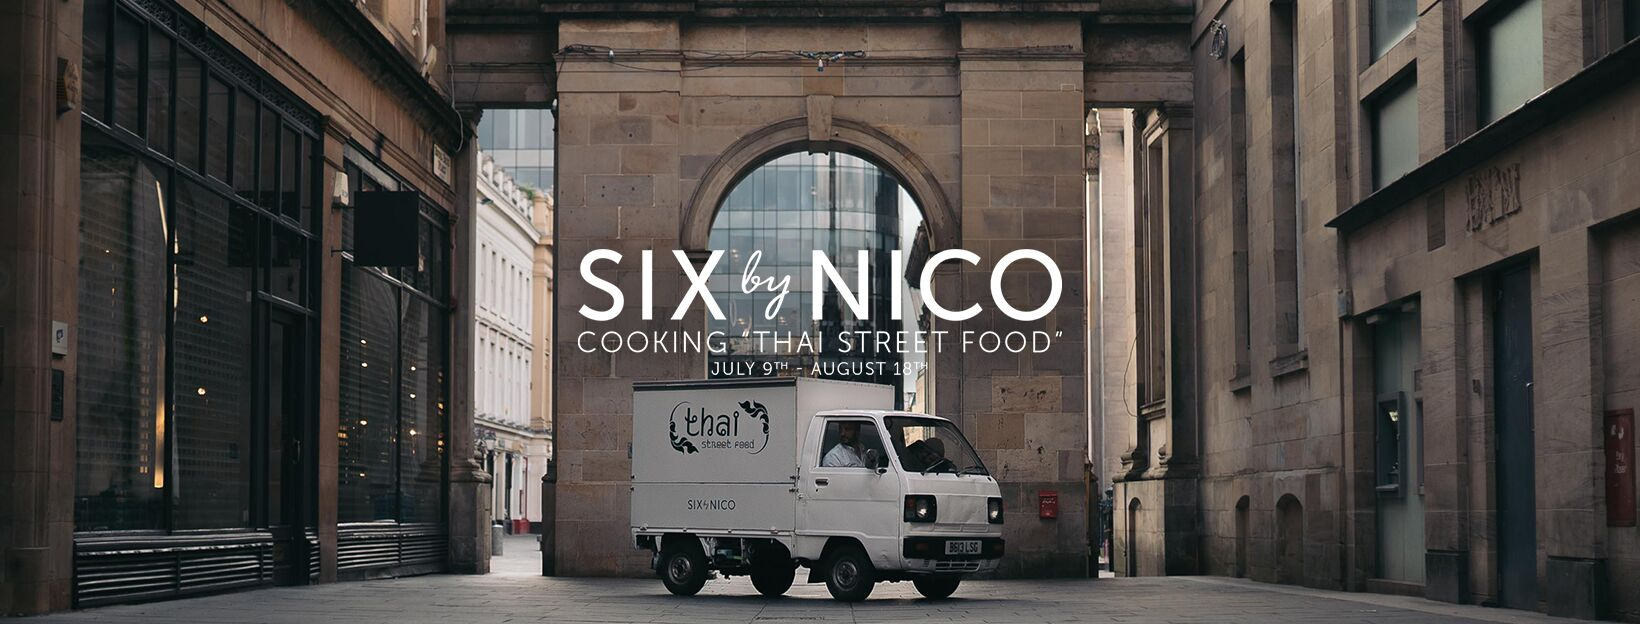 Sic by Nico's next theme is Thai Street Food - Read full article here